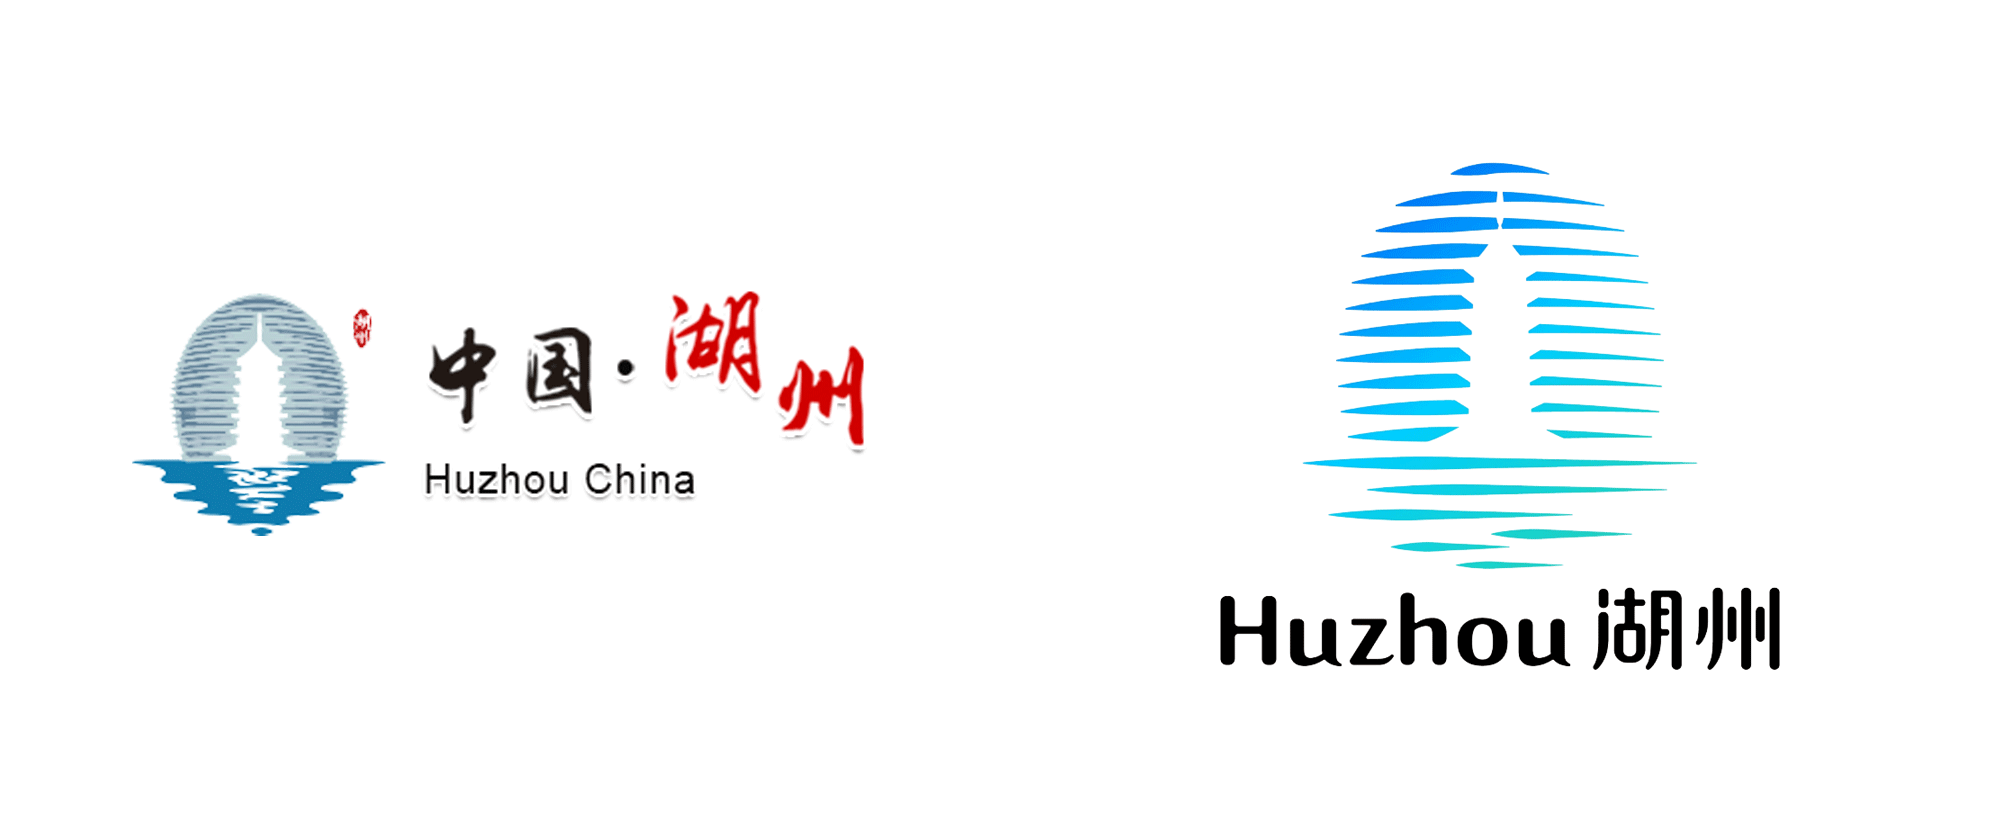 New Logo and Identity for Huzhou